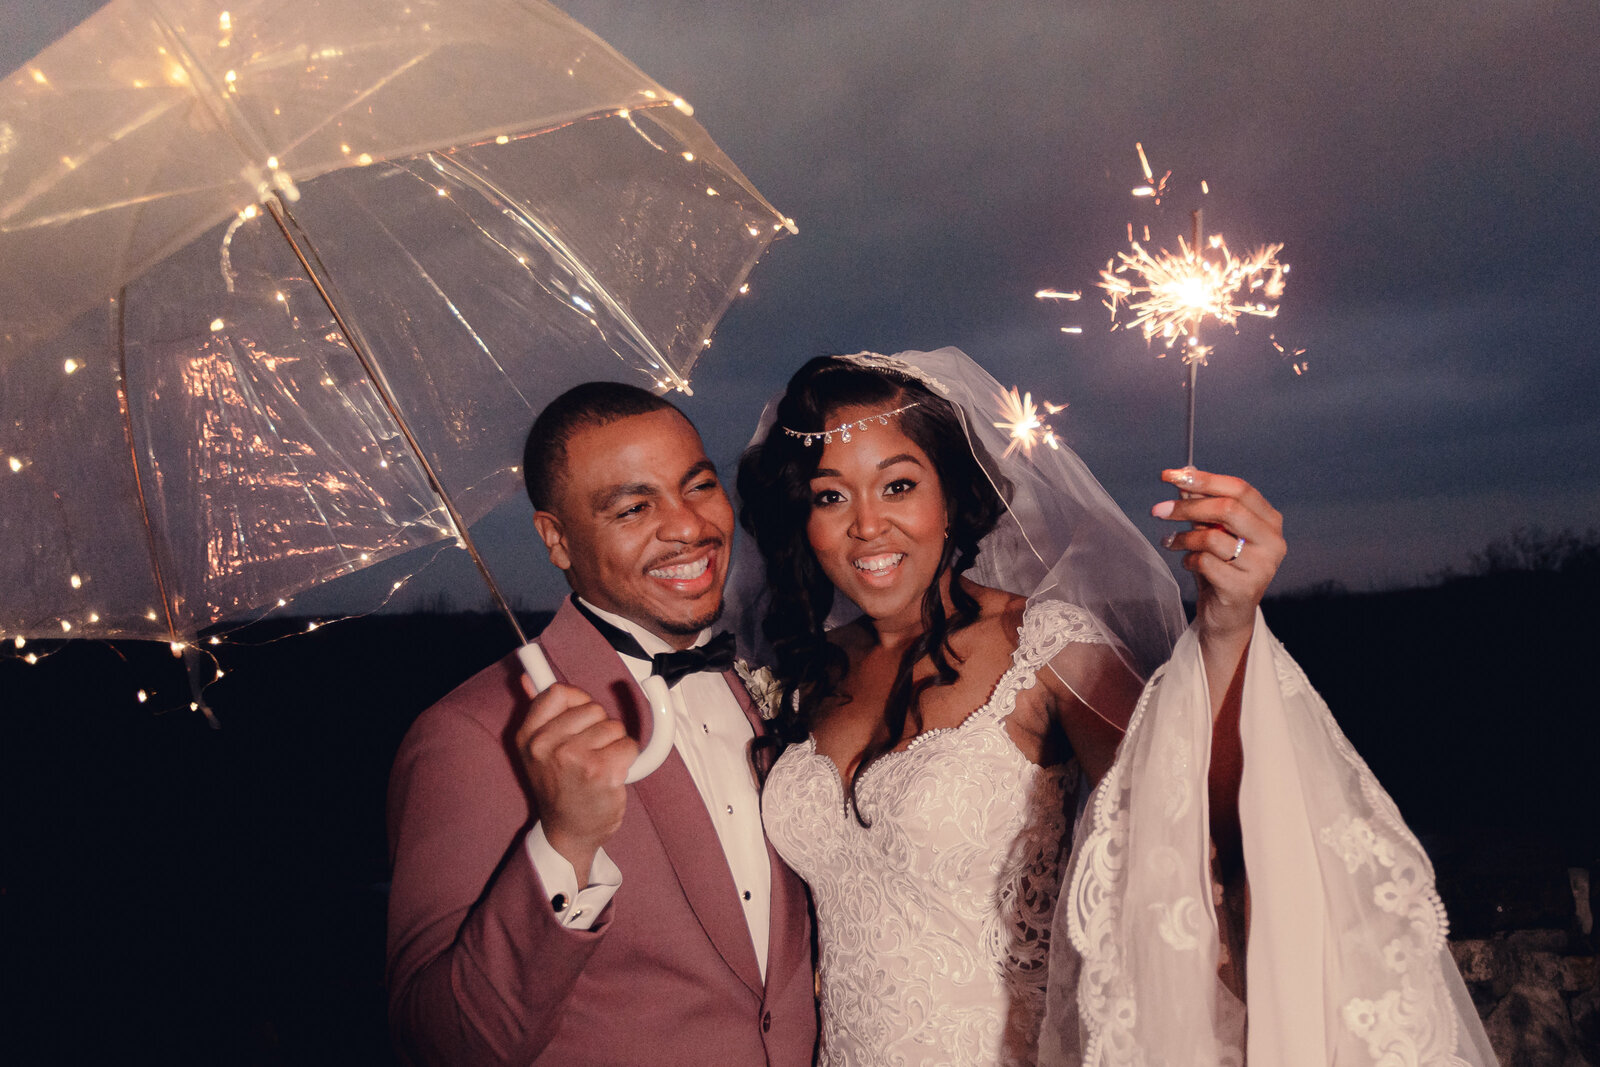 sparkler-photography-wedding-le-chateau-suess-moments-wedding-photography-brooklyn